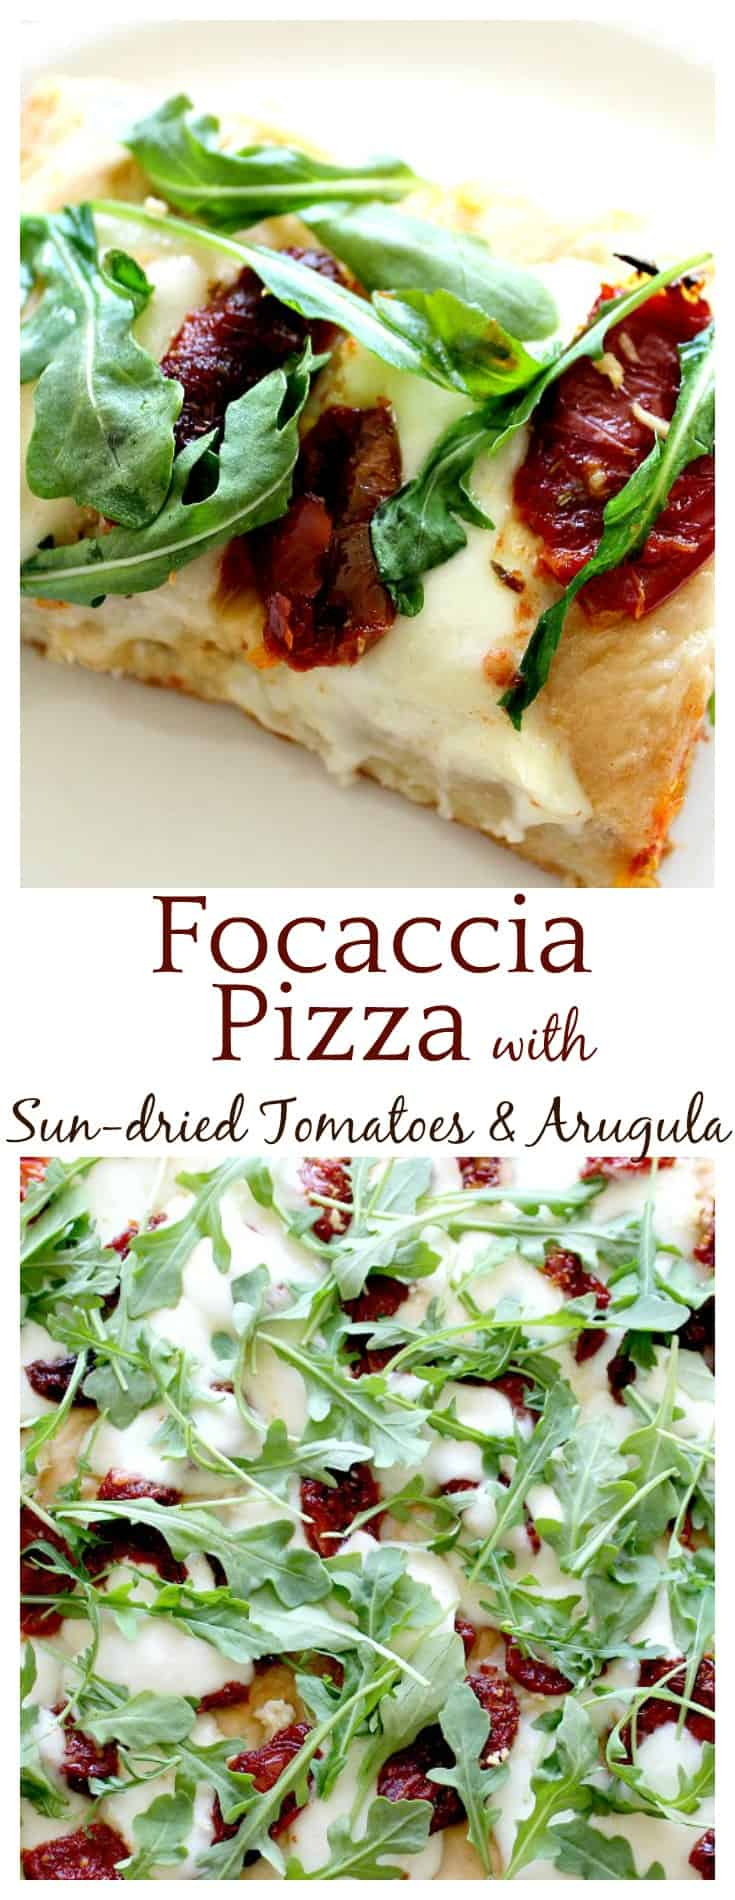 Focaccia Pizza with Sun-dried Tomatoes and Arugula ...